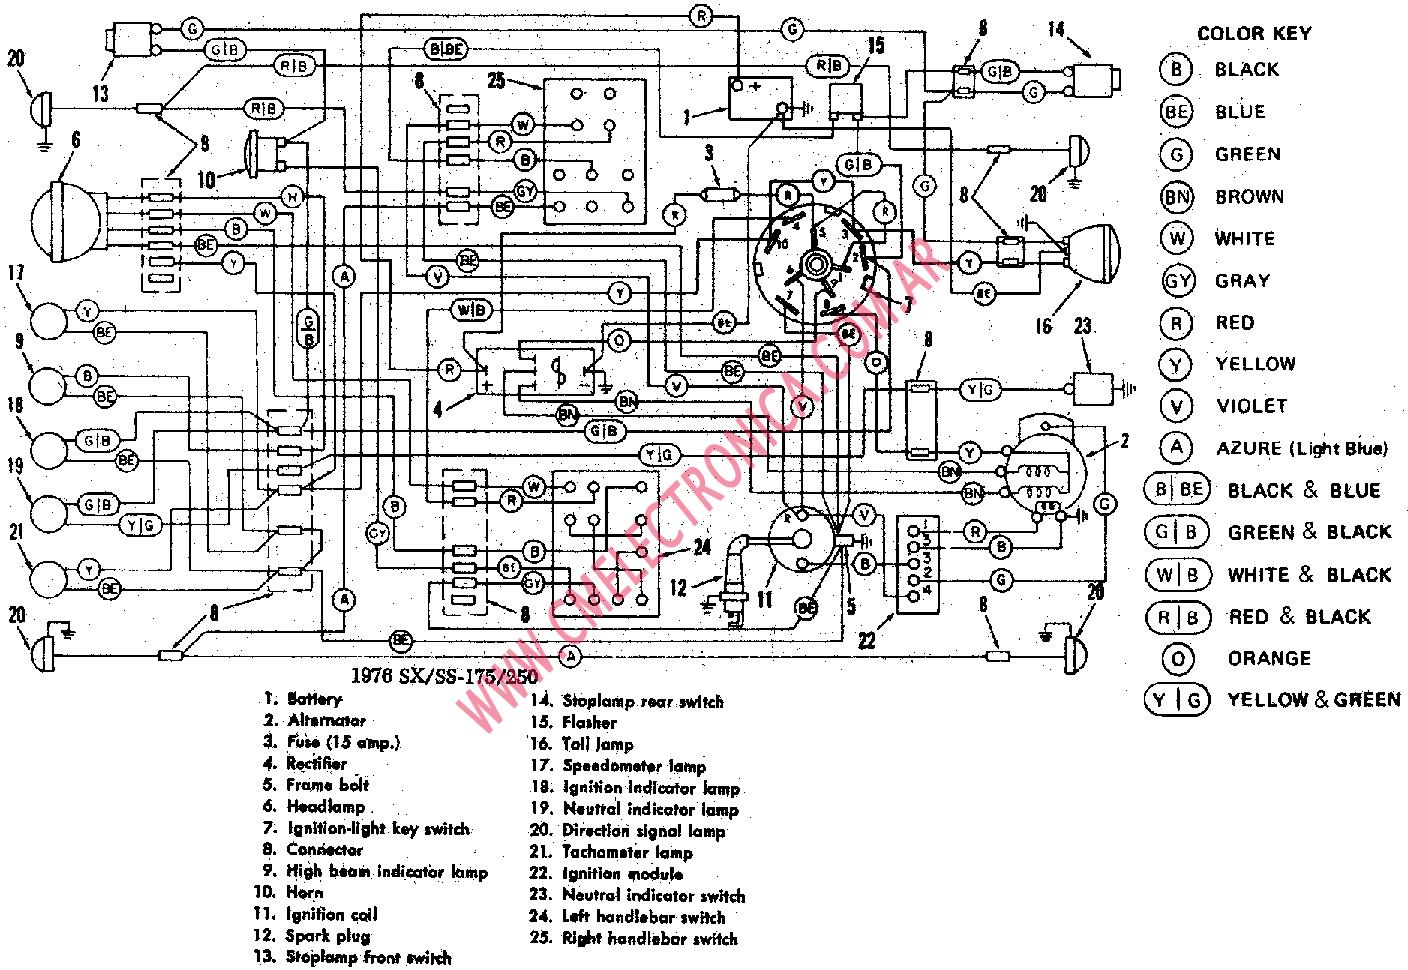 Subaru Impreza Performance Upgrades also Zr 500 Motor Diagram likewise Index besides Discussion T7468 ds550560 together with Honda Accord Why Is My Car Not Starting And My Lights Flickering 376285. on new 1998 honda civic motor